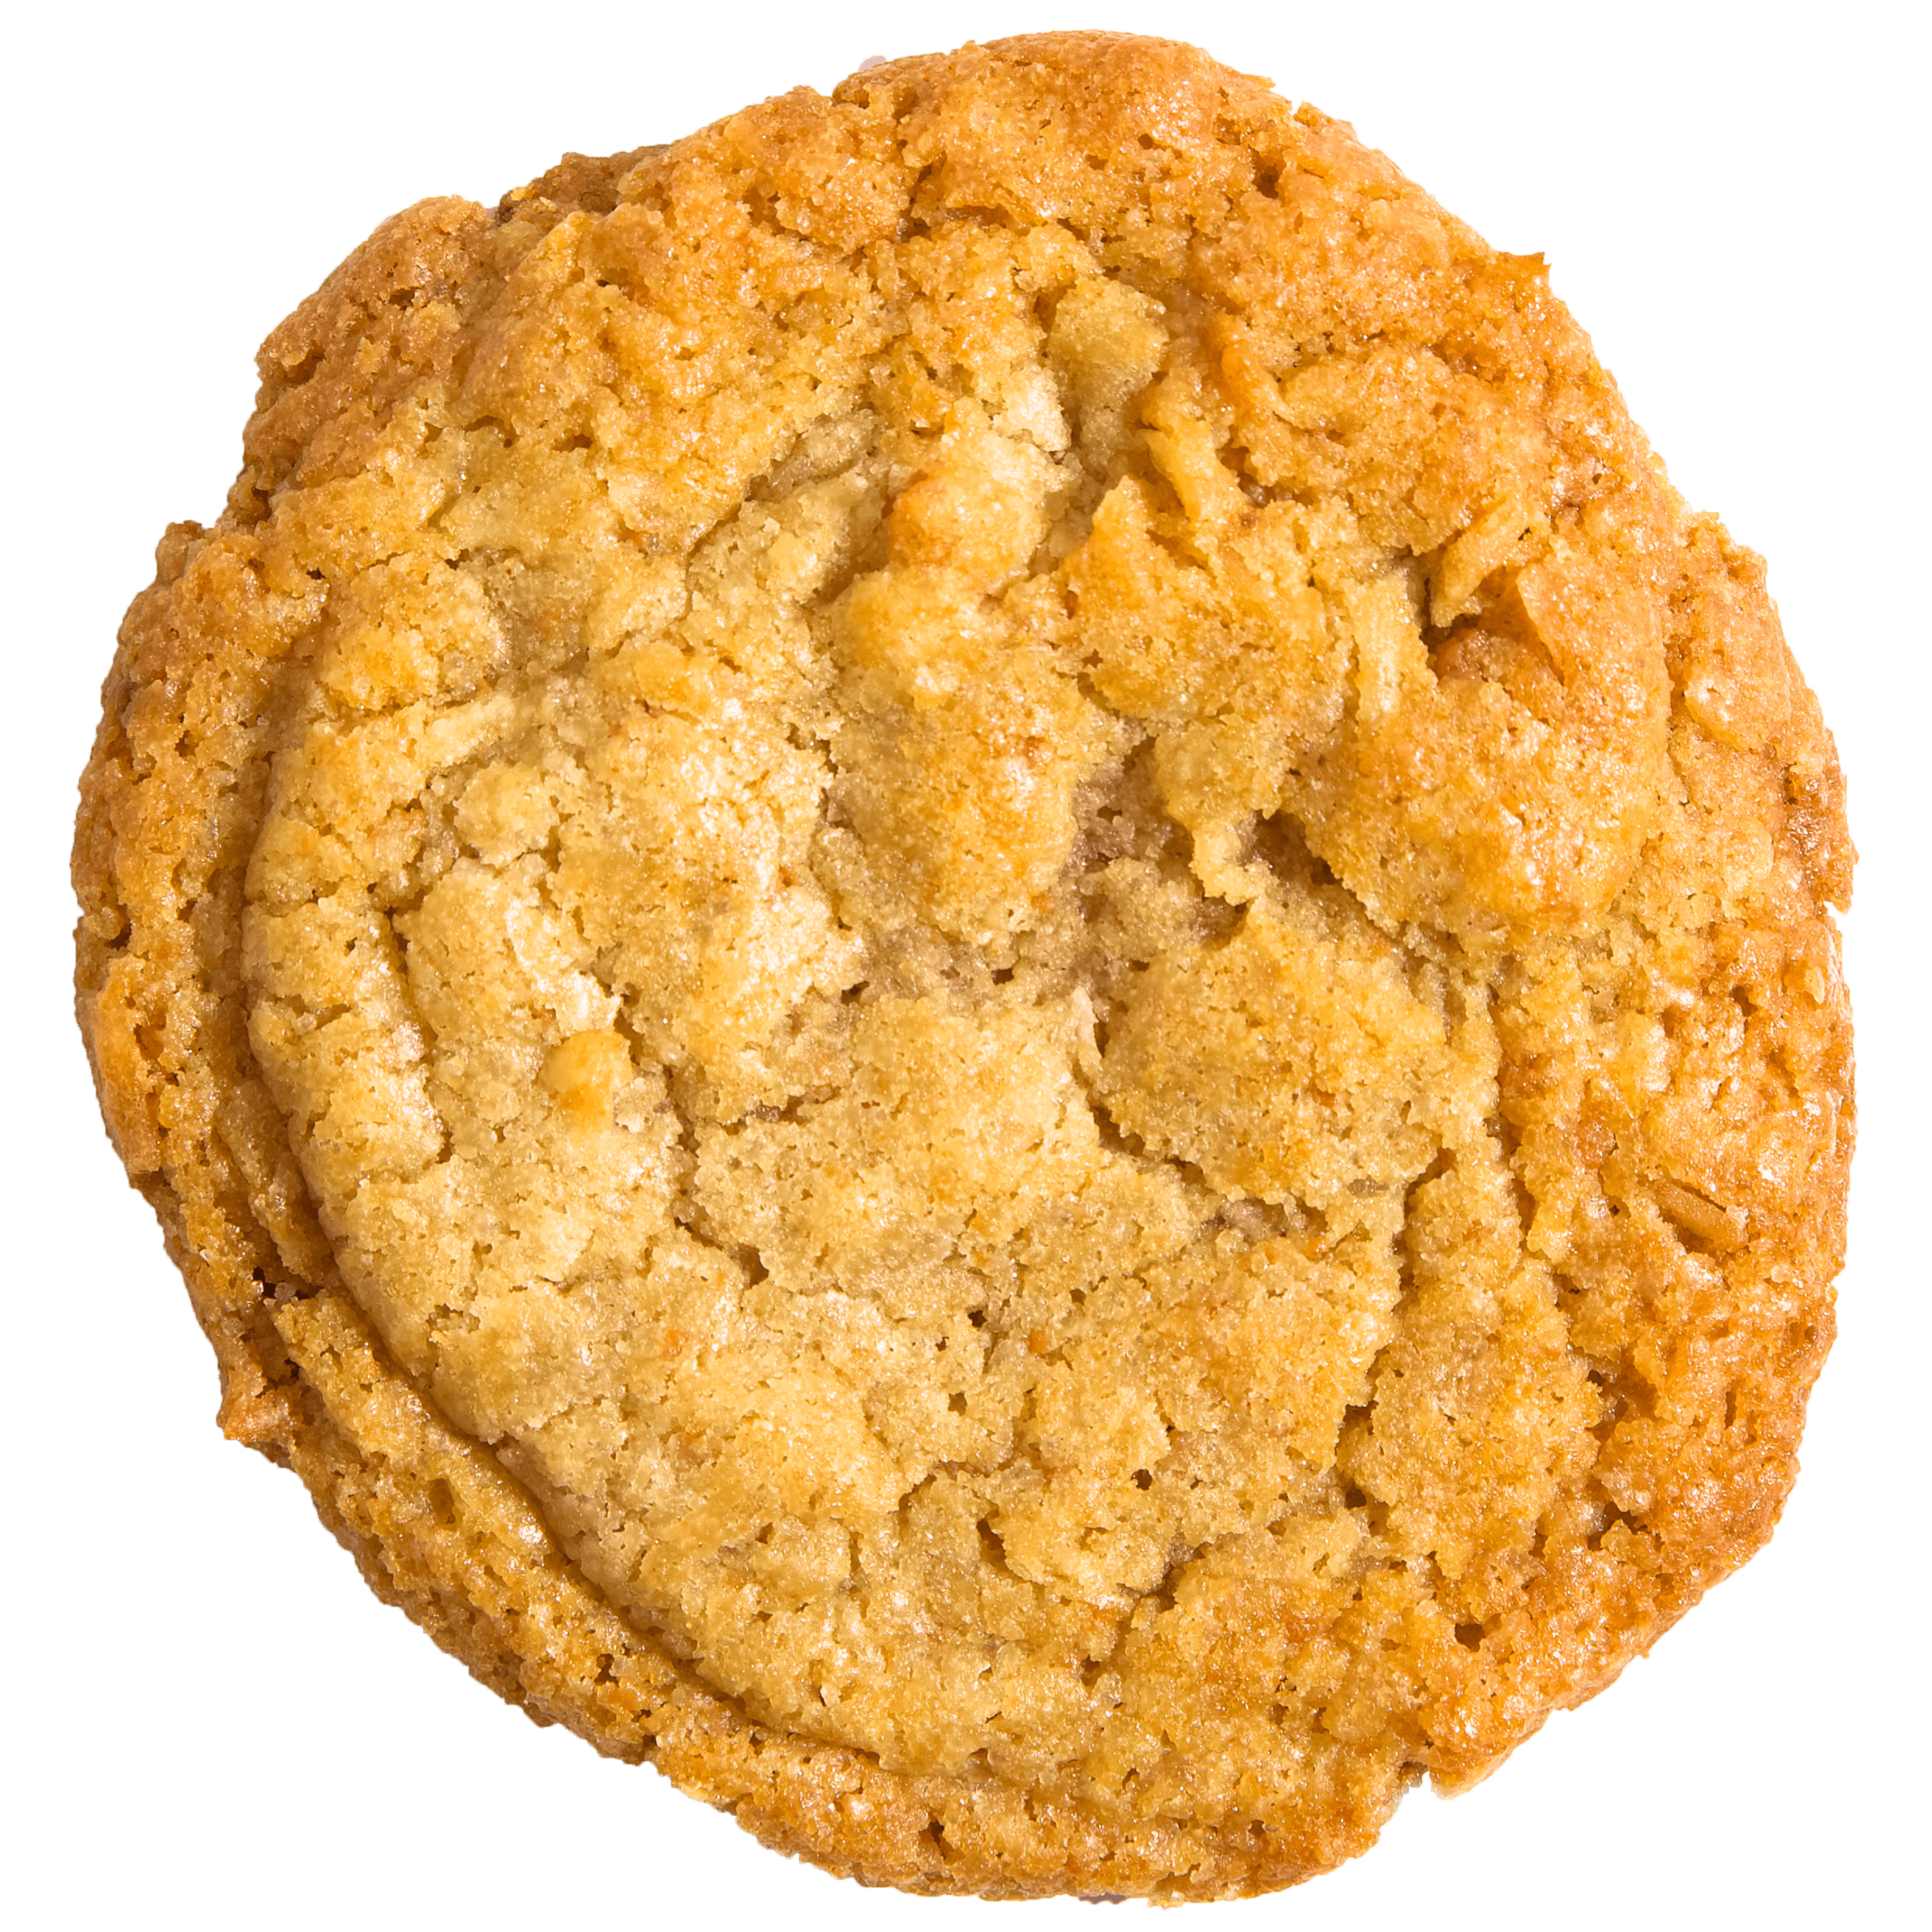 Ahh…the pureness of coconut. Our Coconut Pie Cookie is simple and straight to the point. Coconut. Done right.